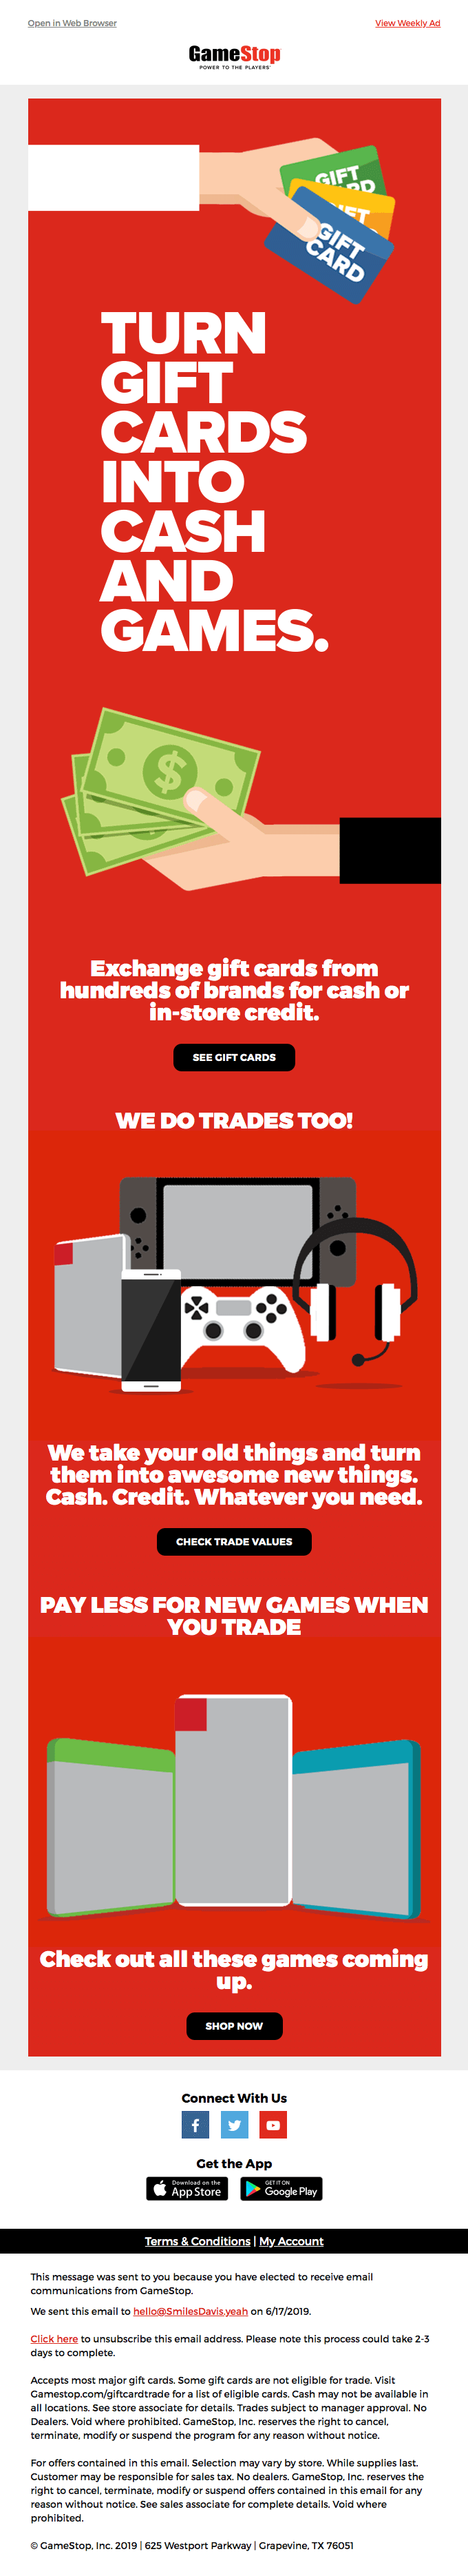 Game stop email design example